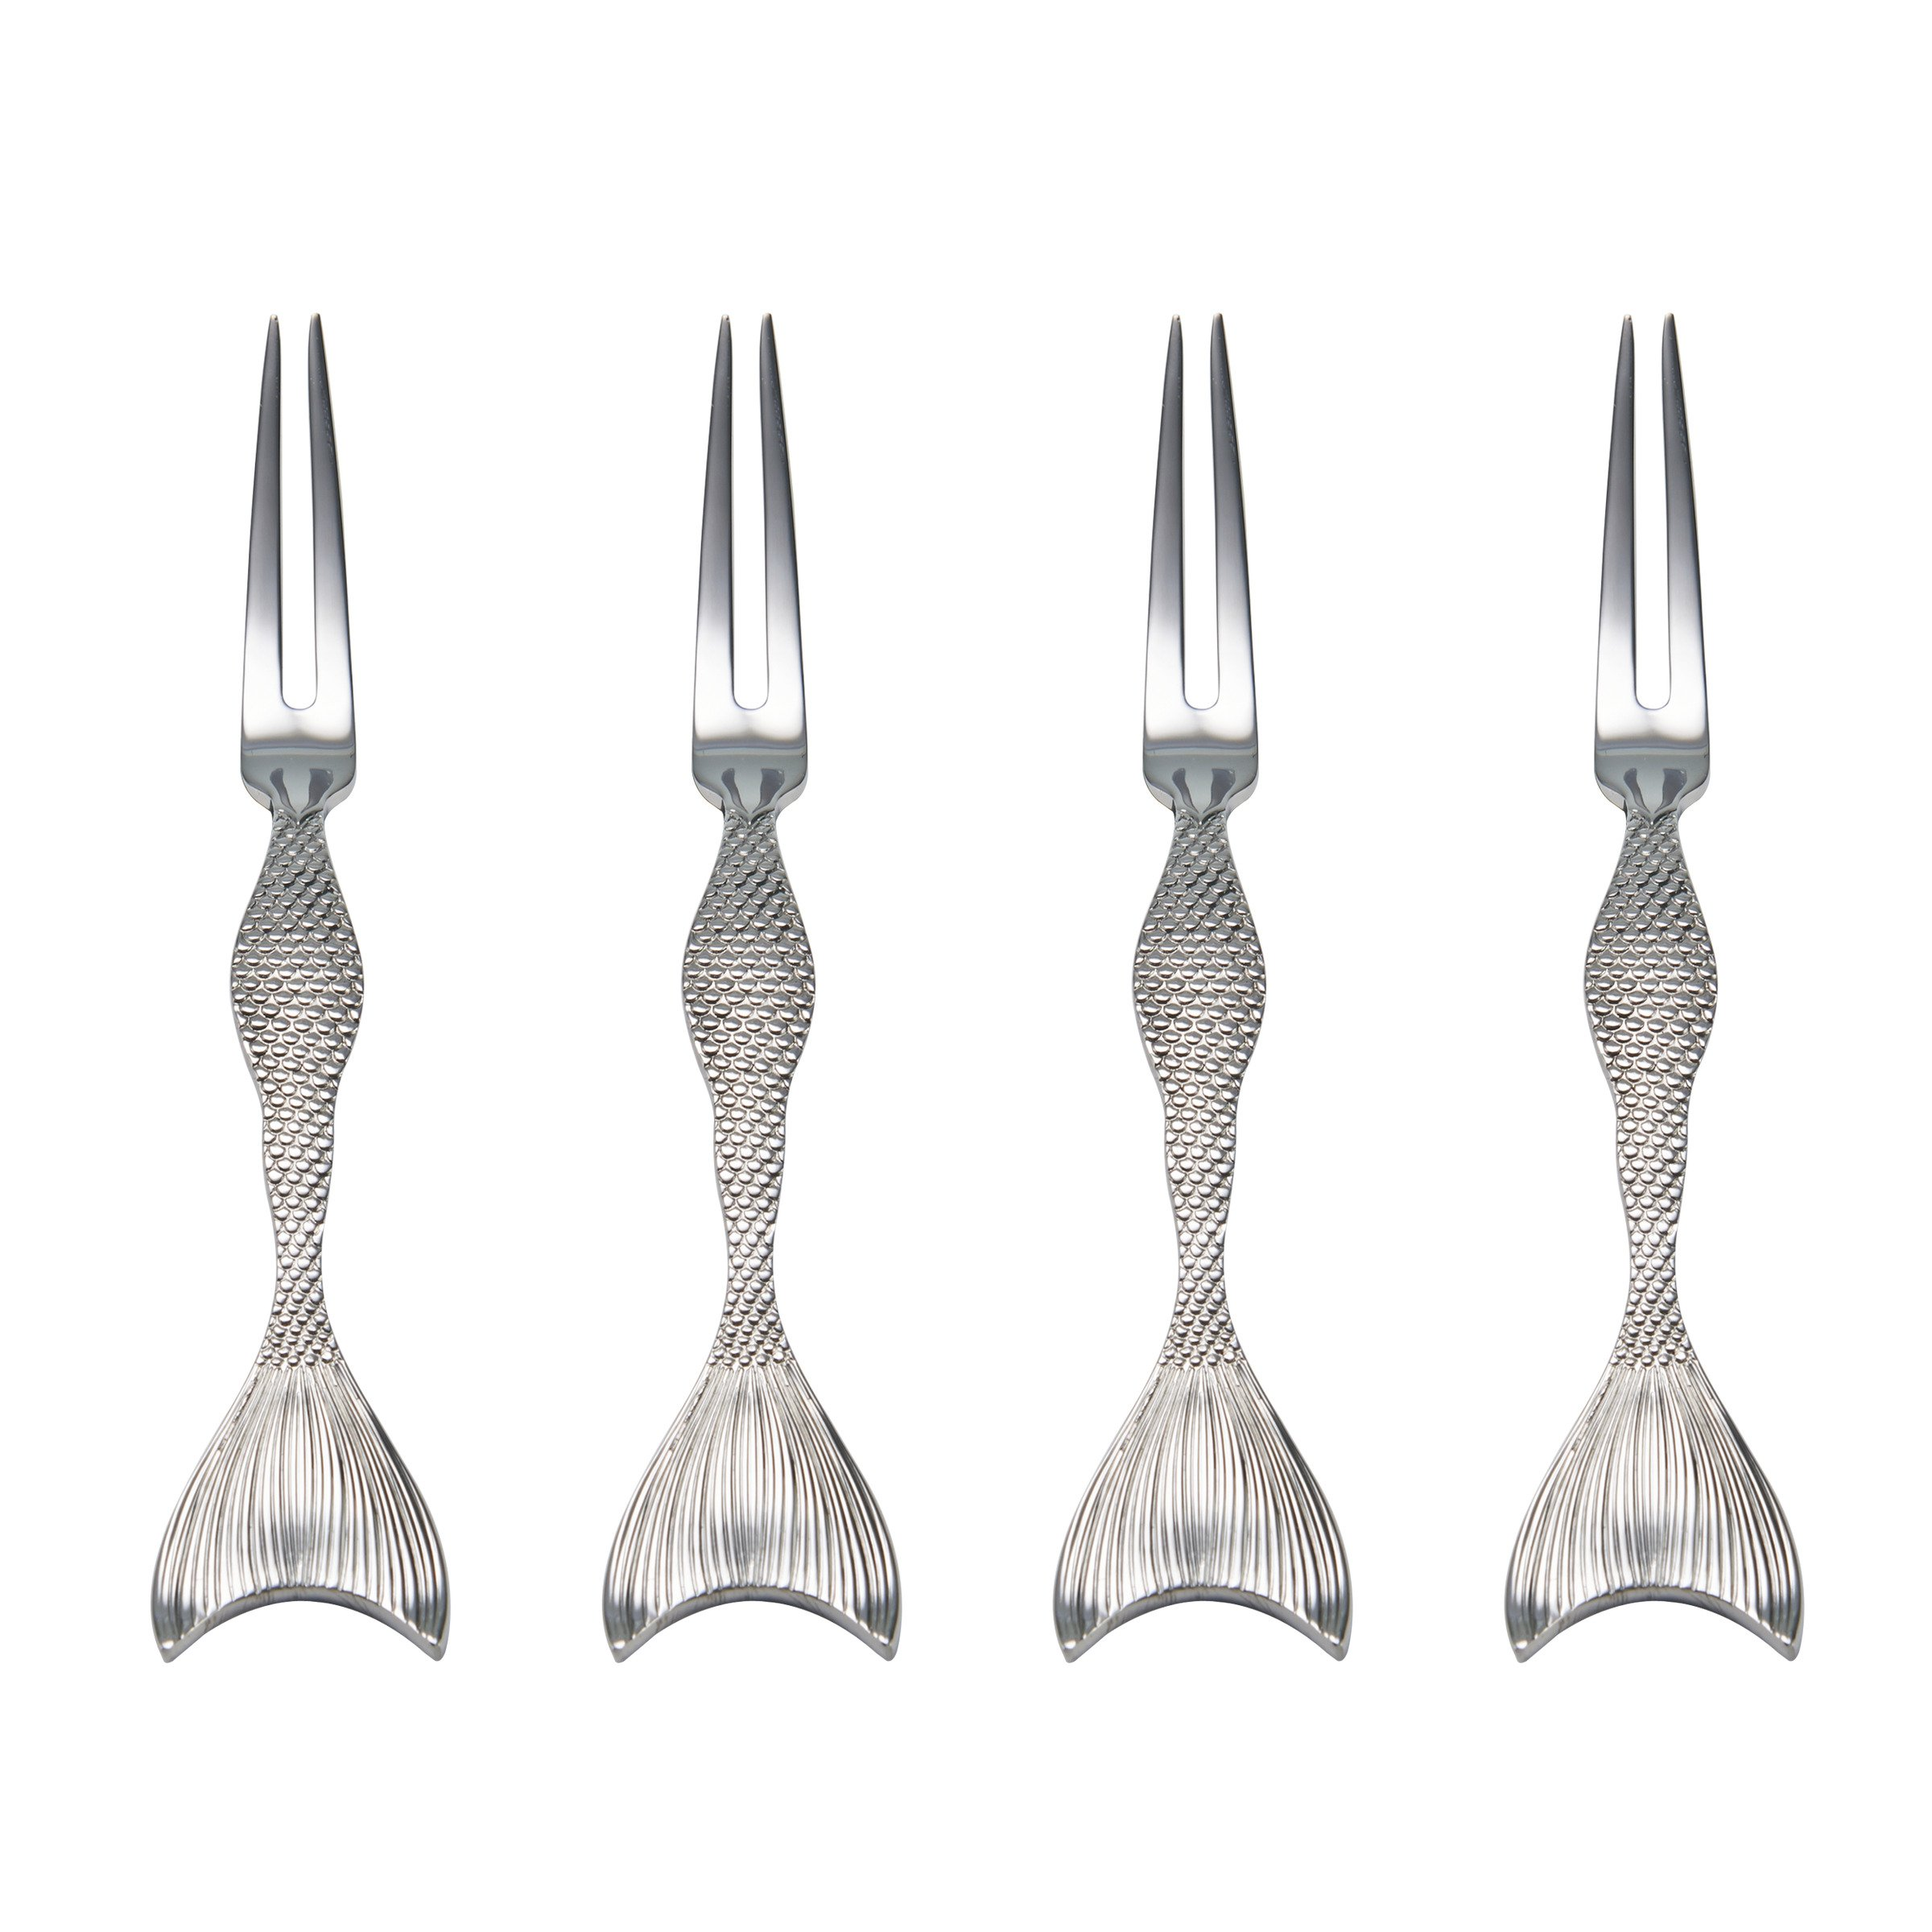 Wallace 5228035 Mermaid Food Pick Set, One Size, Stainless Steel